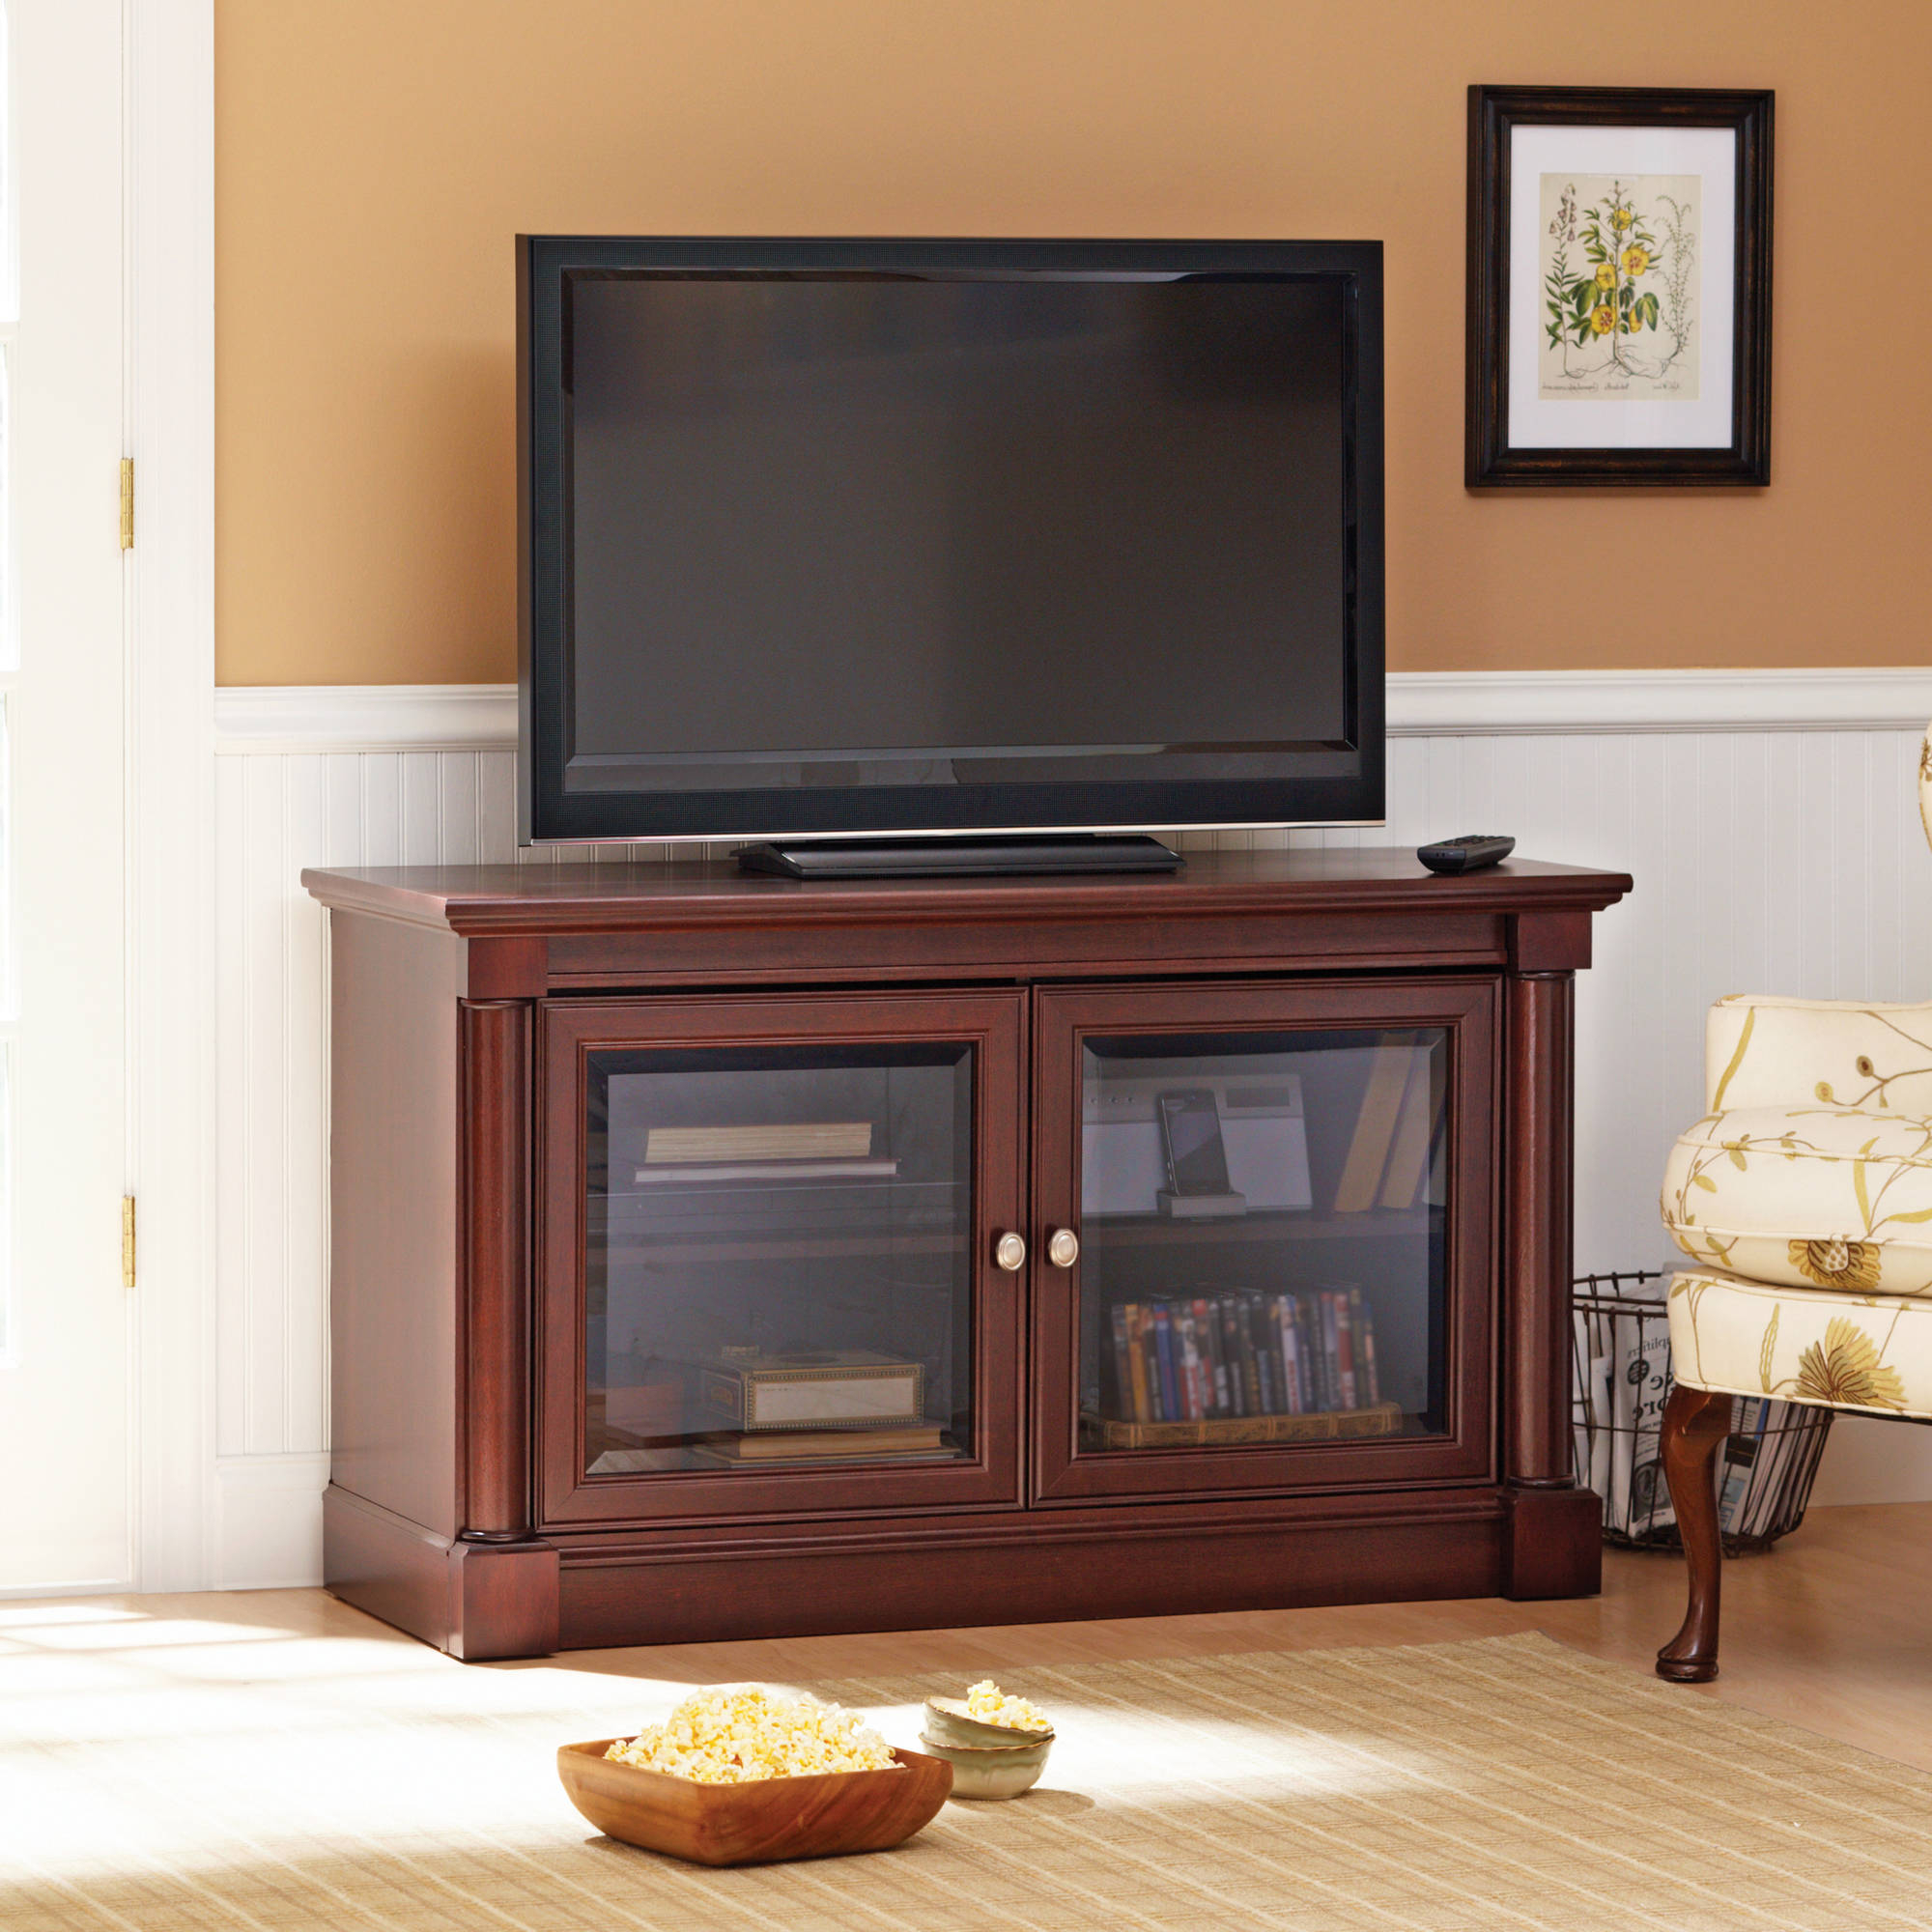 Better Homes & Gardens River Crest Tv Stand For Tvs Up To 42 Inside Most Current Oak Tv Stands With Glass Doors (Gallery 14 of 20)